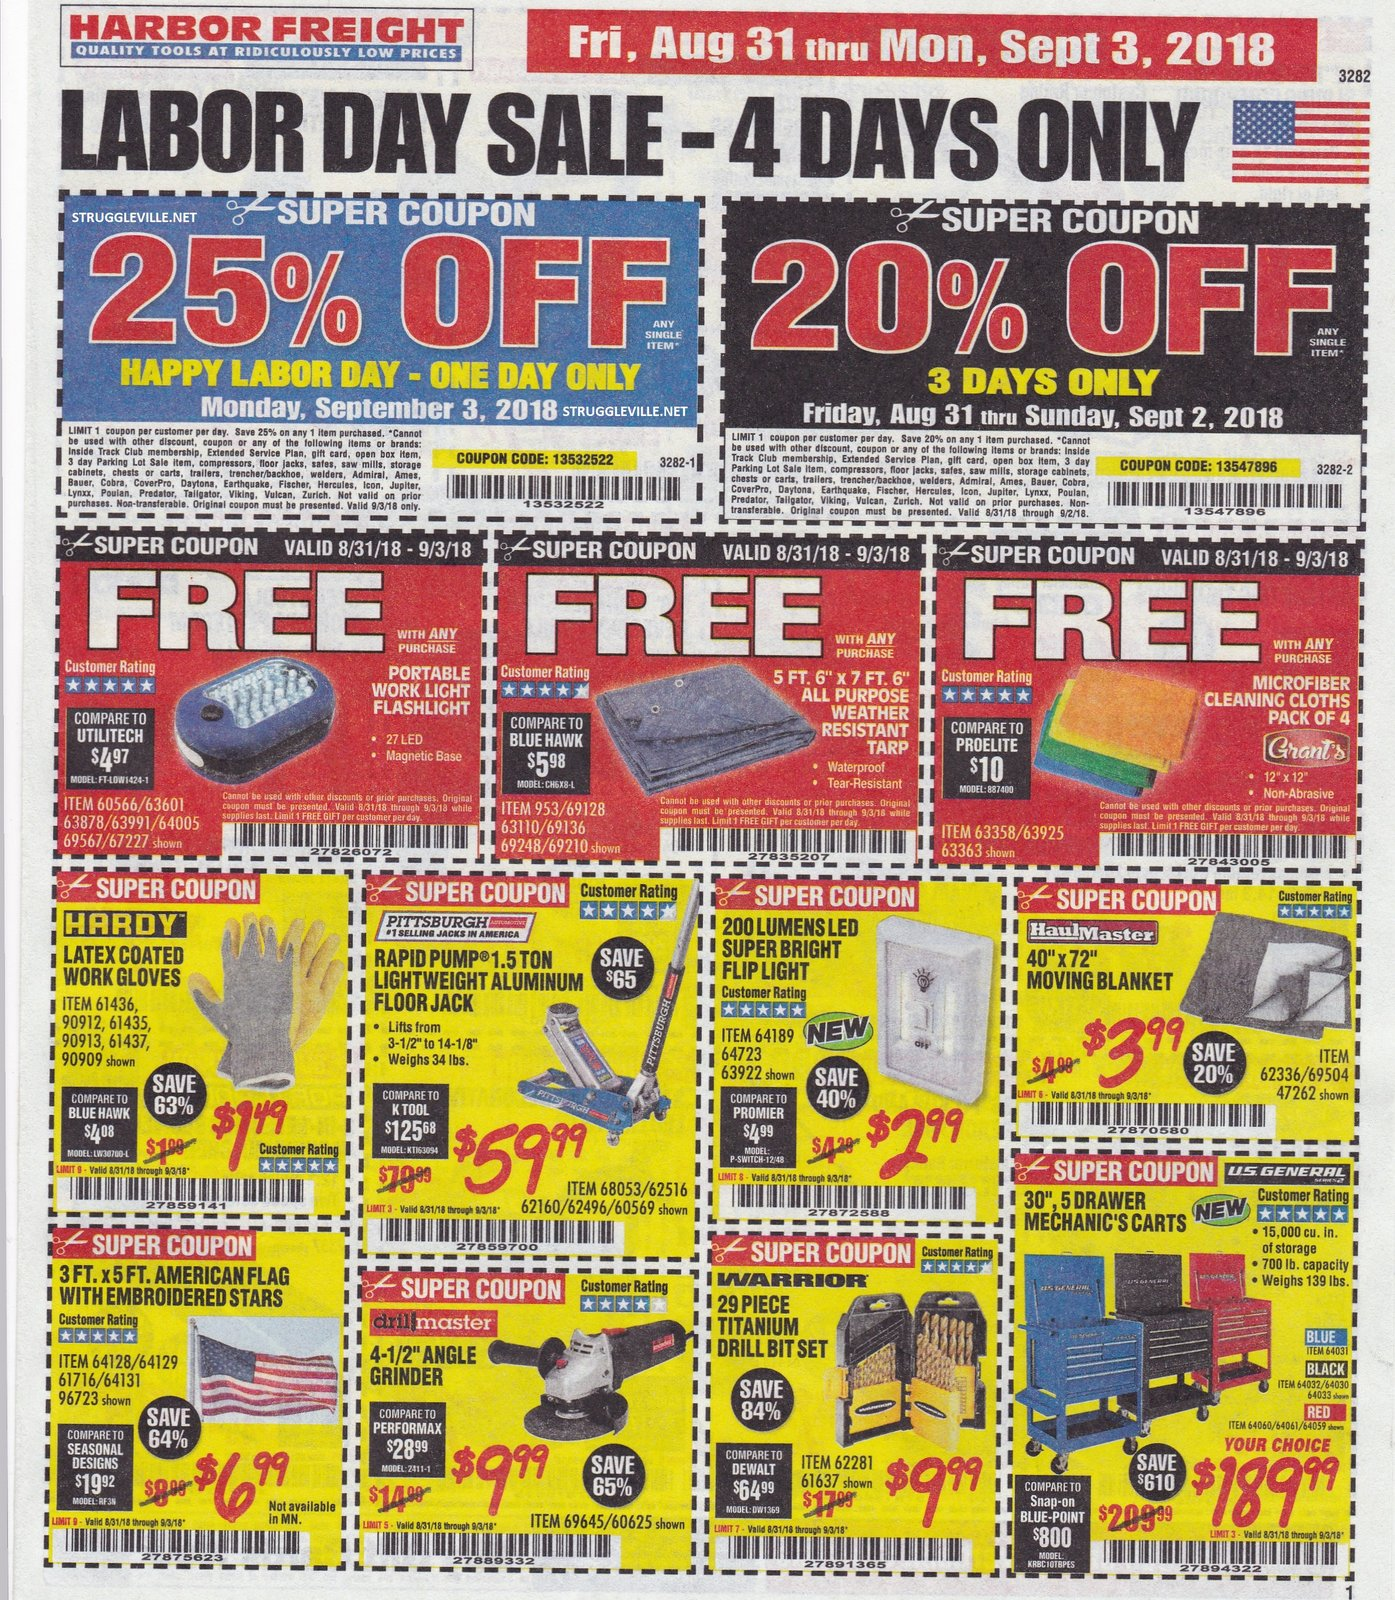 Harbor freight sale coupons